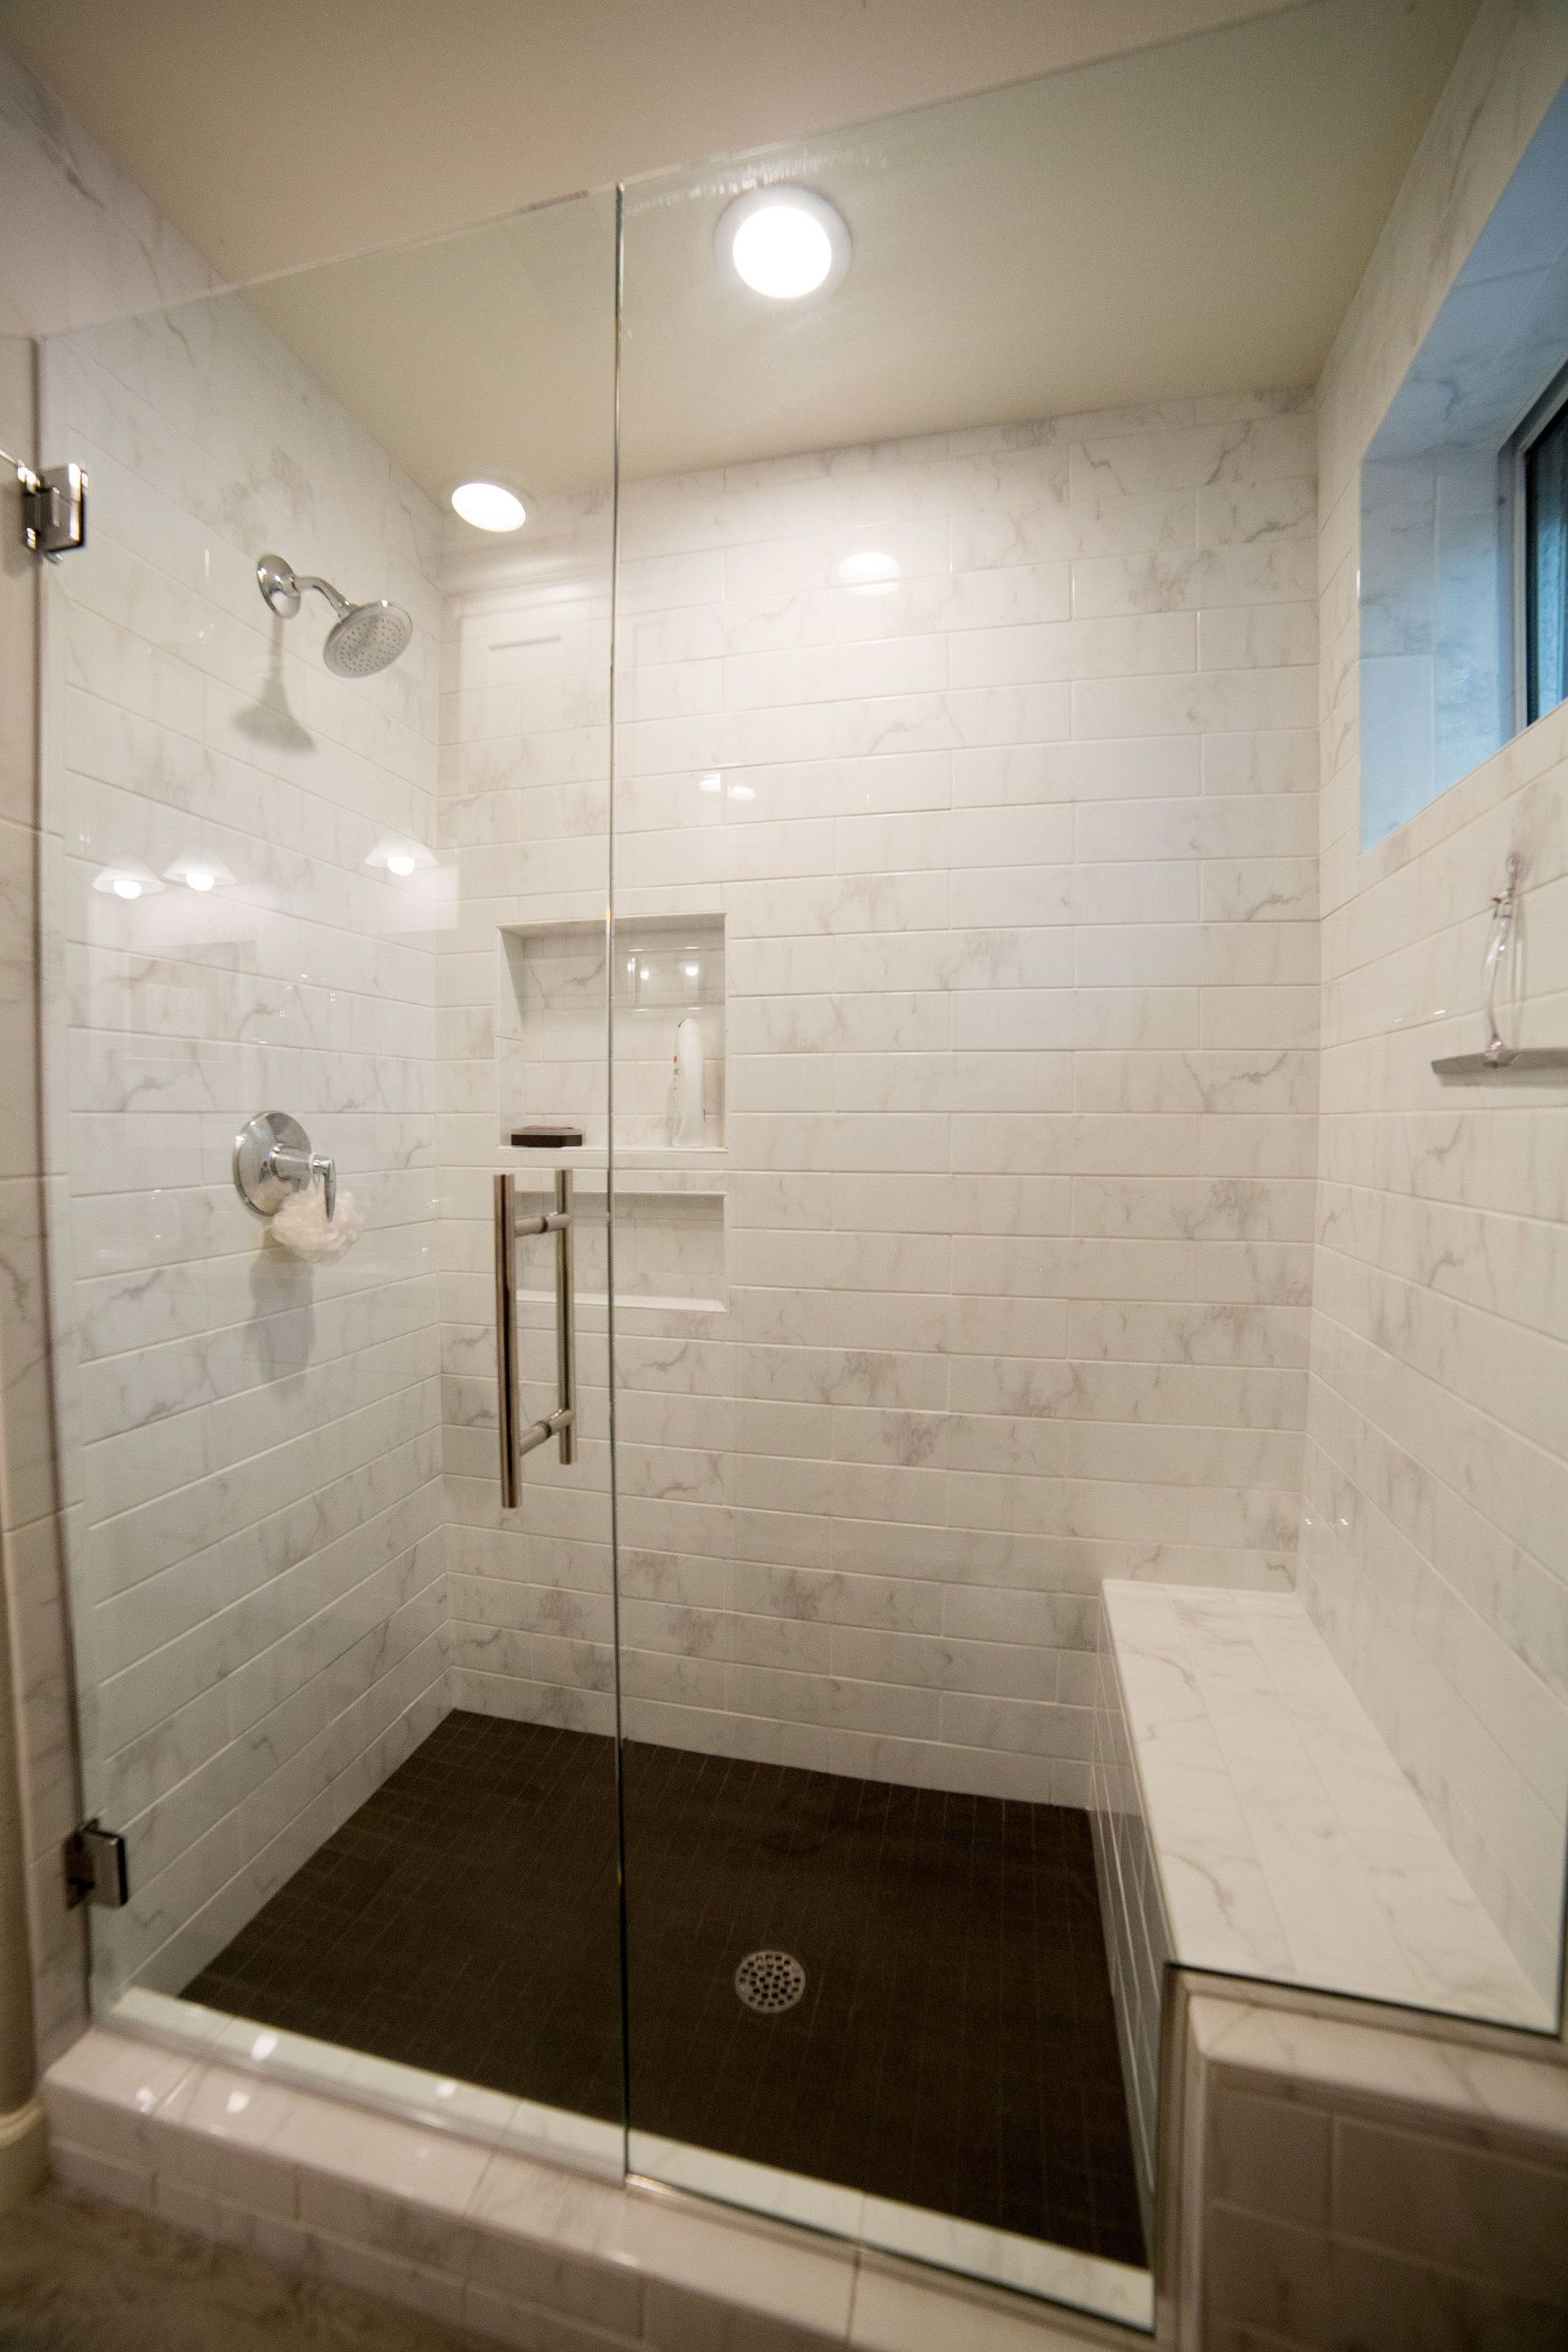 Polished Porcelain 4 X16 Tile With 2 X2 Tile At The Shower Floor Give This Guest Bathroom R Bathrooms Remodel Guest Bathroom Remodel Bathroom Remodel Gallery [ jpg ]